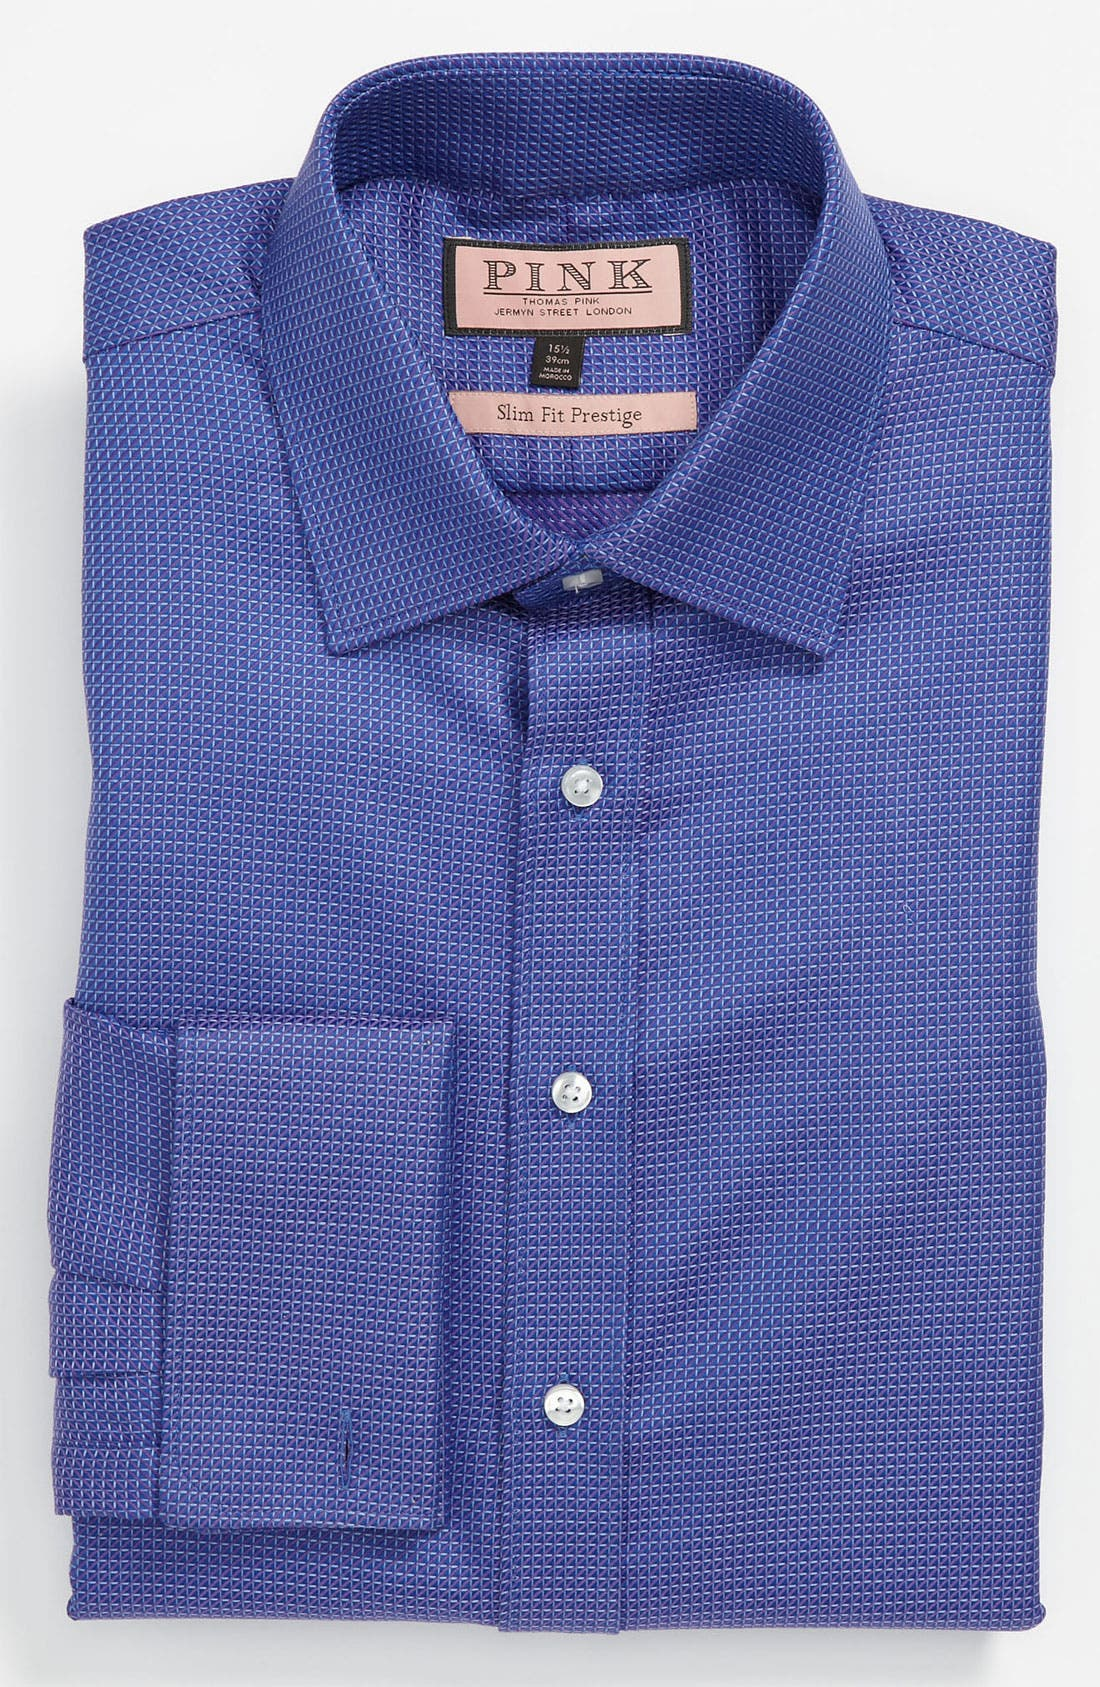 Main Image - Thomas Pink Slim Fit Prestige Dress Shirt